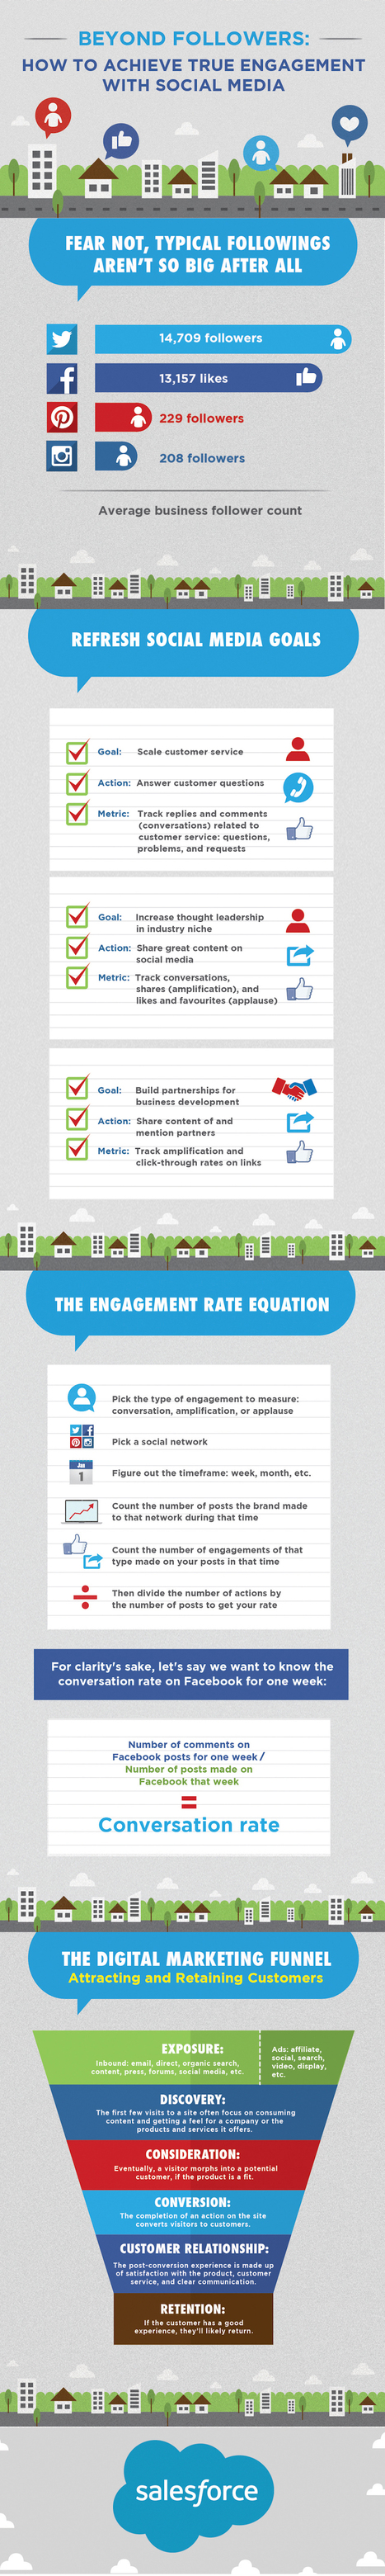 How to Achieve True Engagement With Social Media #INFOGRAPHIC | MarketingHits | Scoop.it